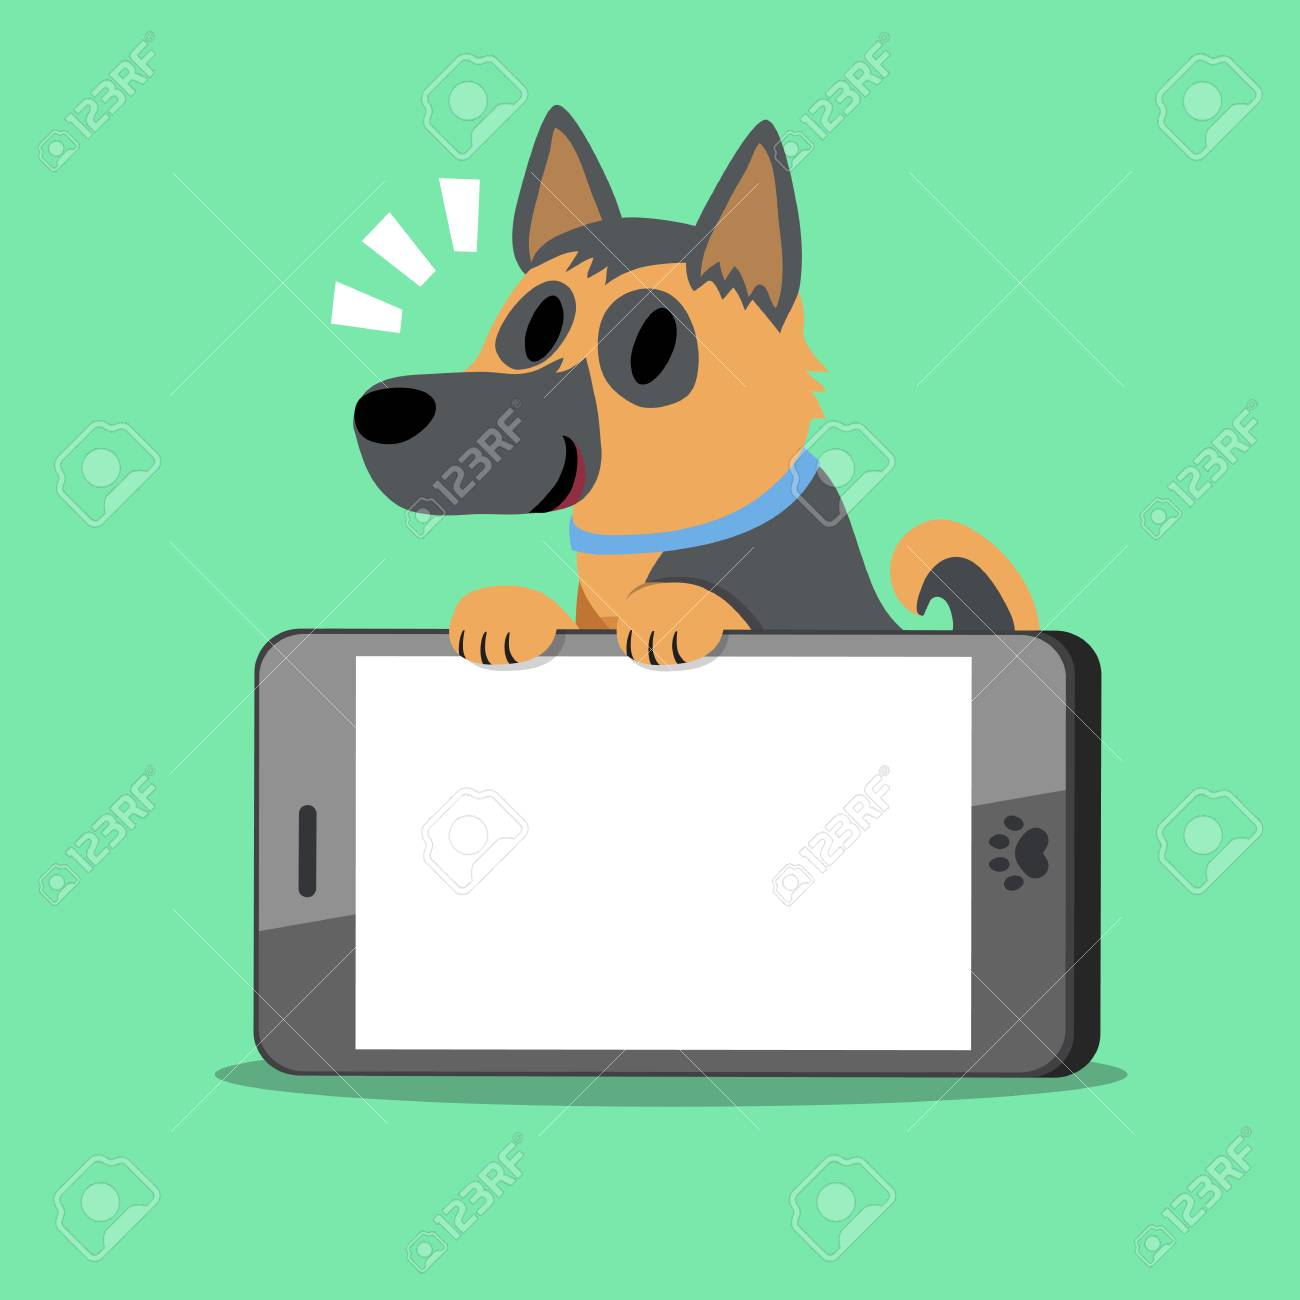 Cartoon Character German Shepherd Dog And Smartphone Royalty Free